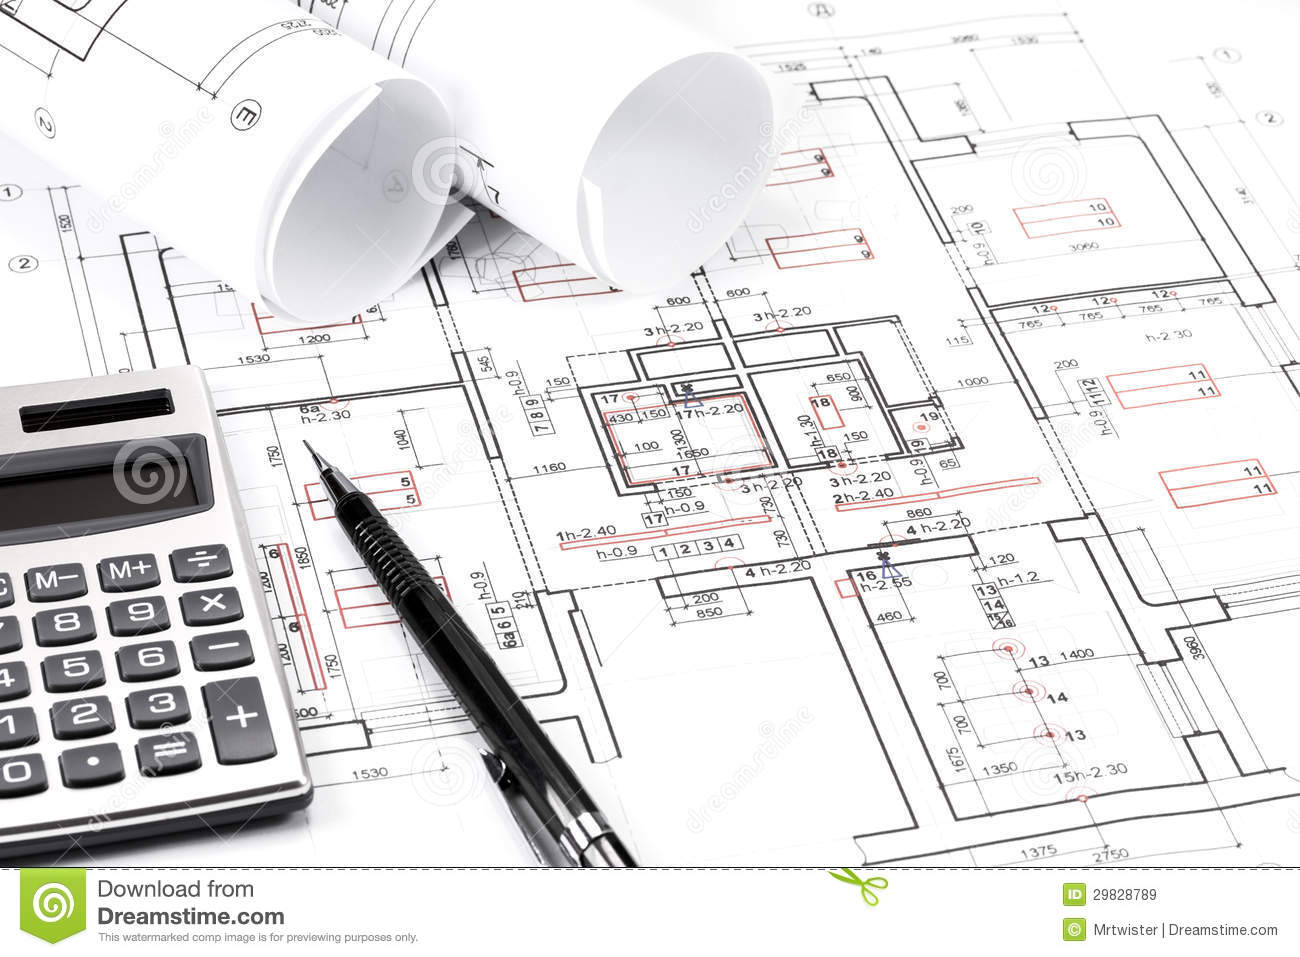 Architectural engineering blueprints for What type of engineer designs buildings